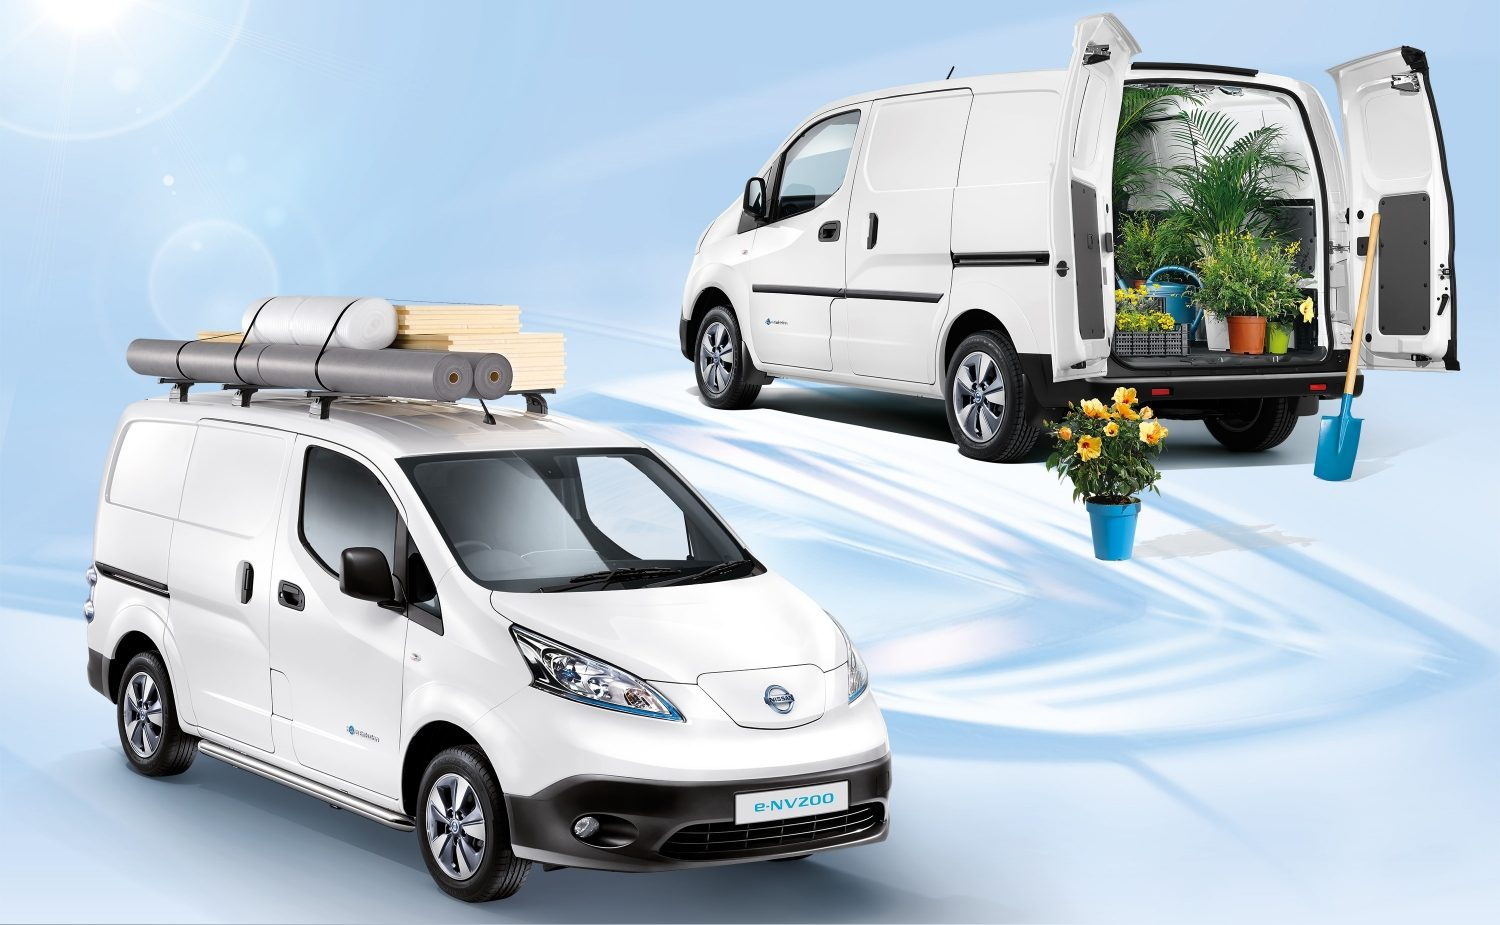 Van | Nissan e-NV200 | Electric van on the road